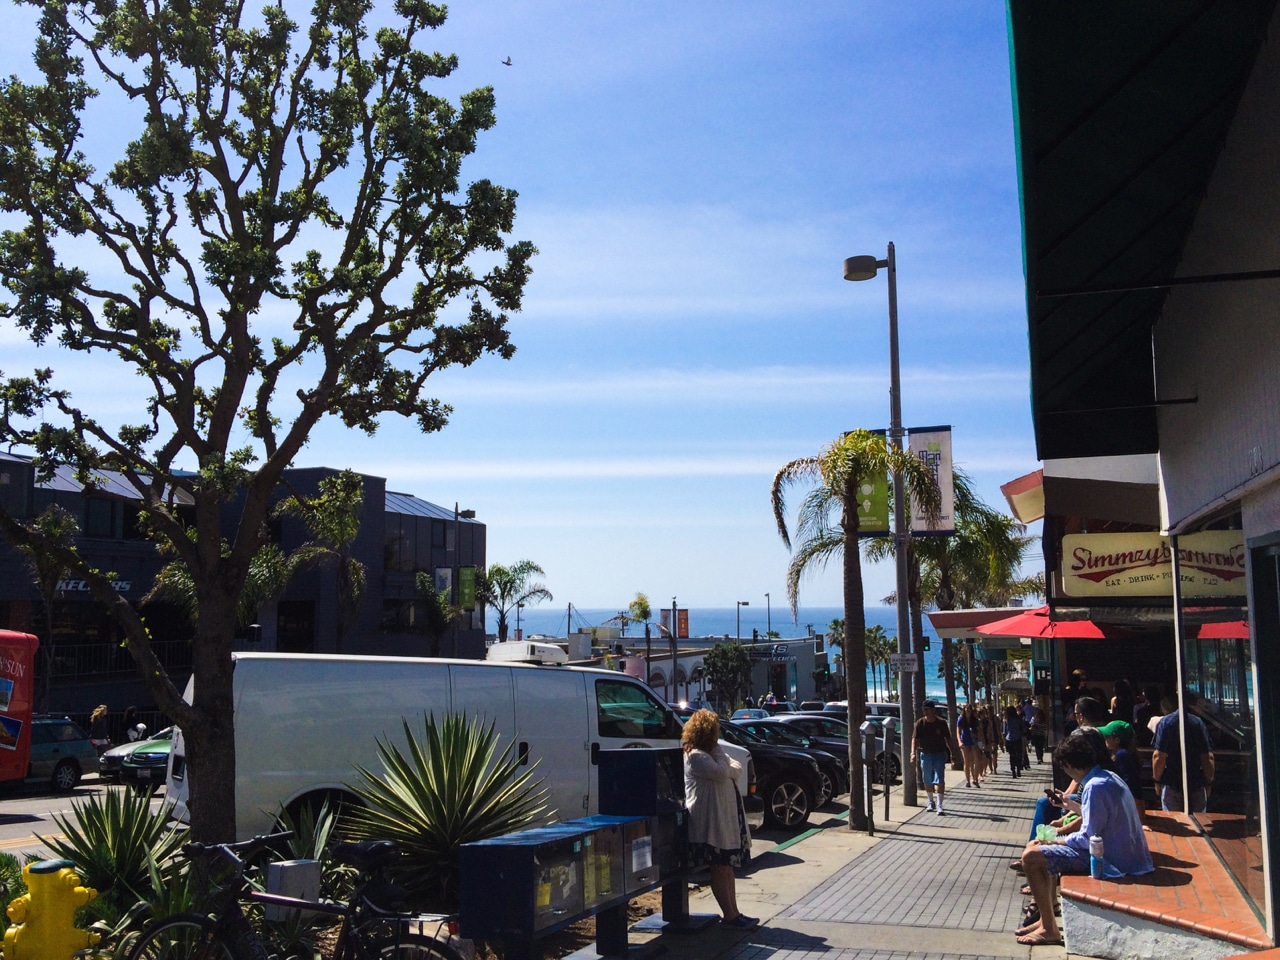 View mall directory info for Manhattan Village in Manhattan Beach, CA – including stores, hours of operation, phone numbers, and more.